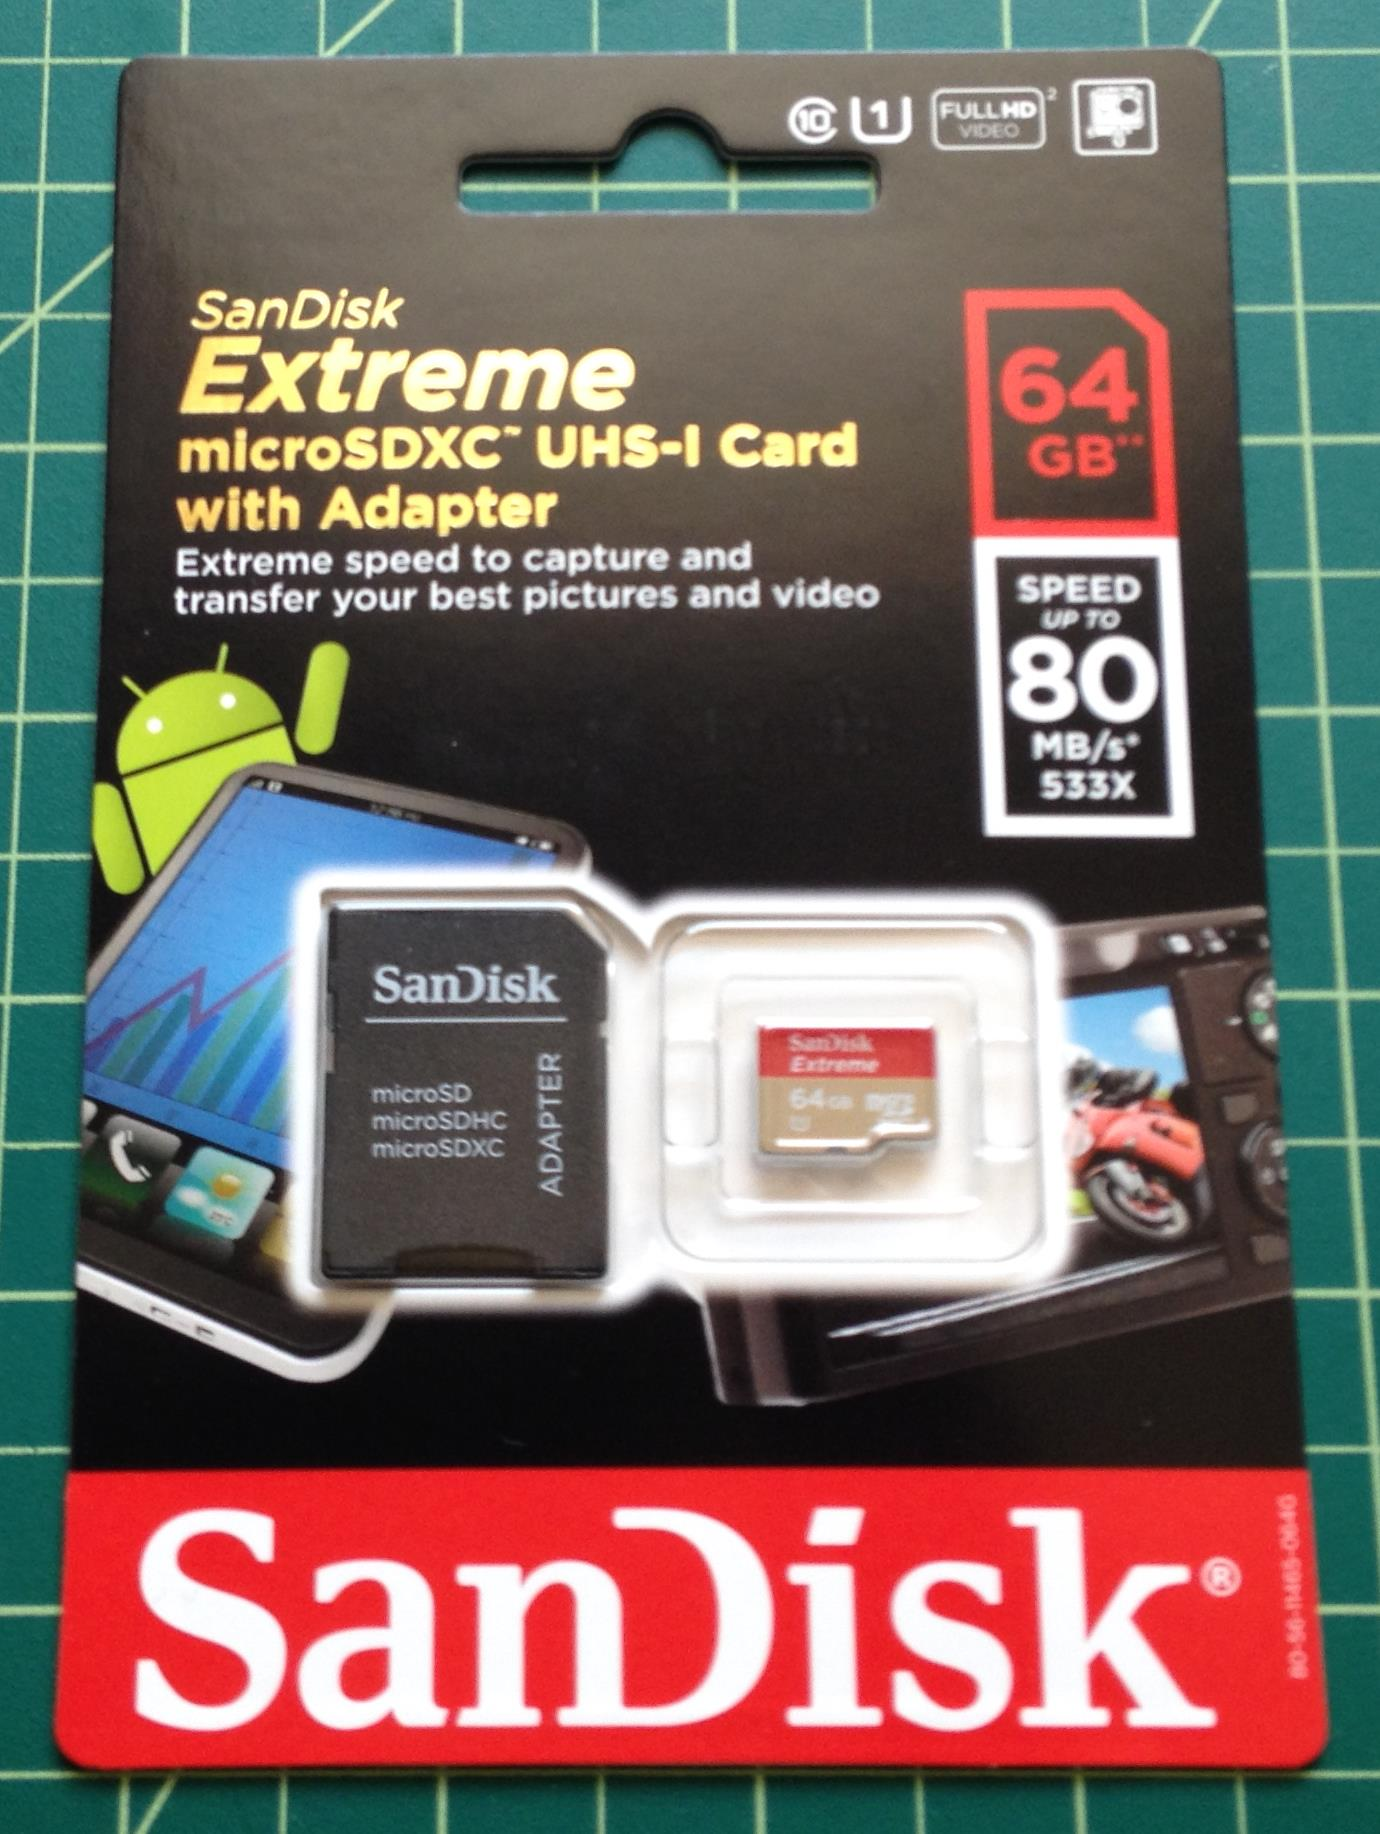 64 GB SanDisk Extreme microSDXC UHS-I Card with Adapter